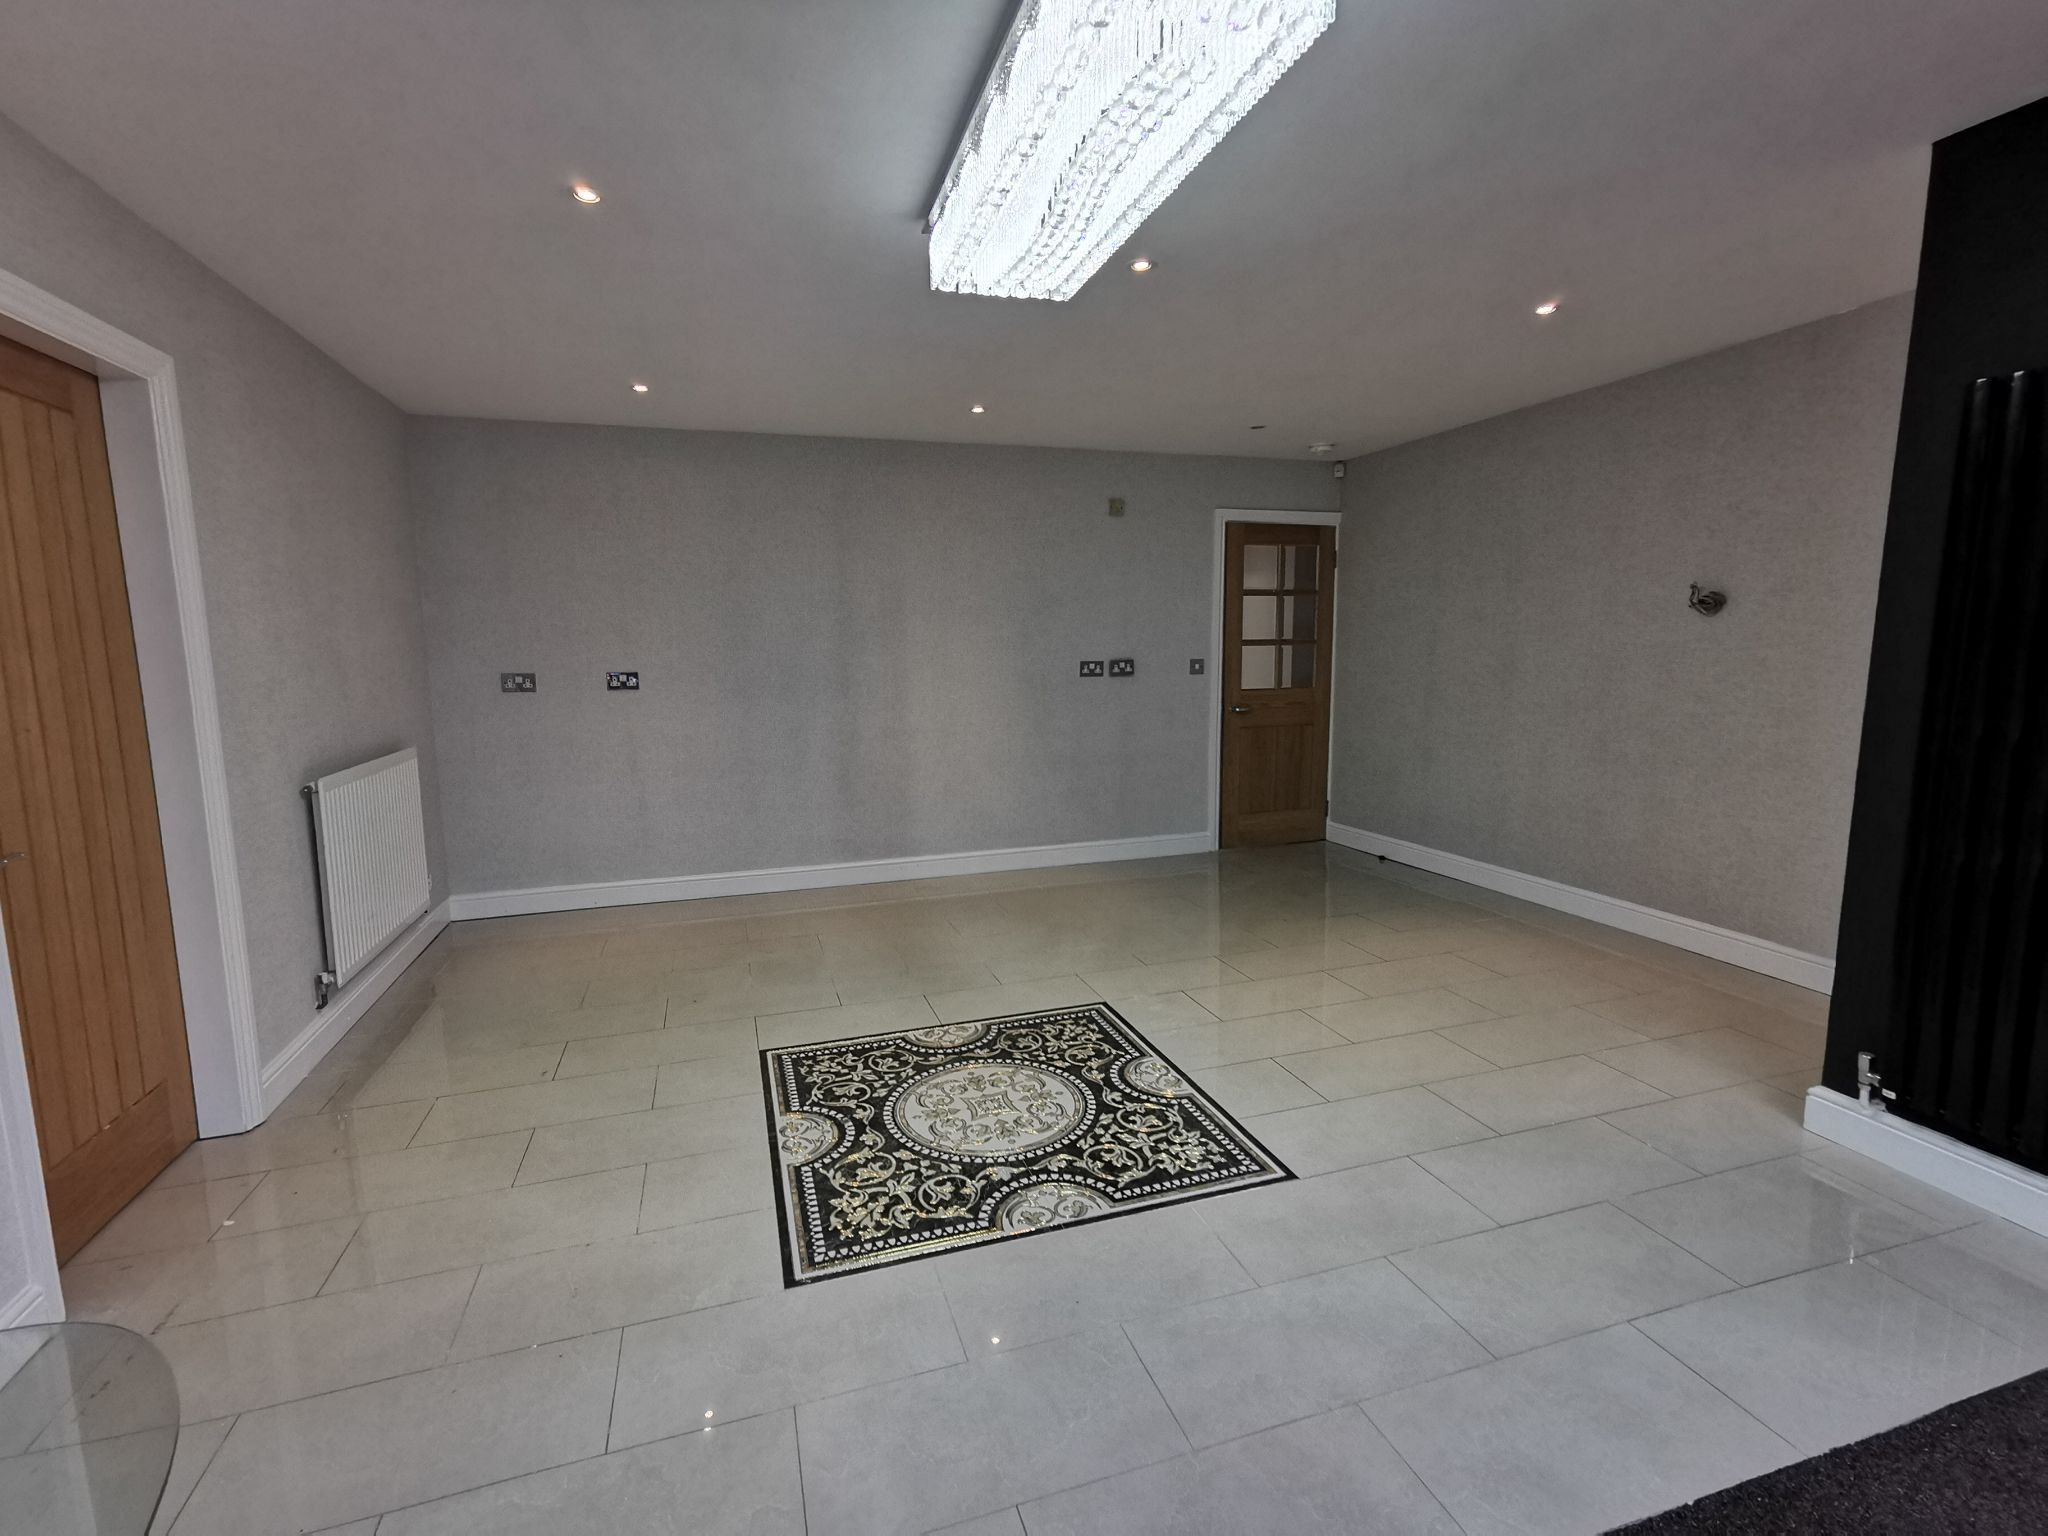 6 bedroom detached bungalow For Sale in Bradford - Photograph 17.